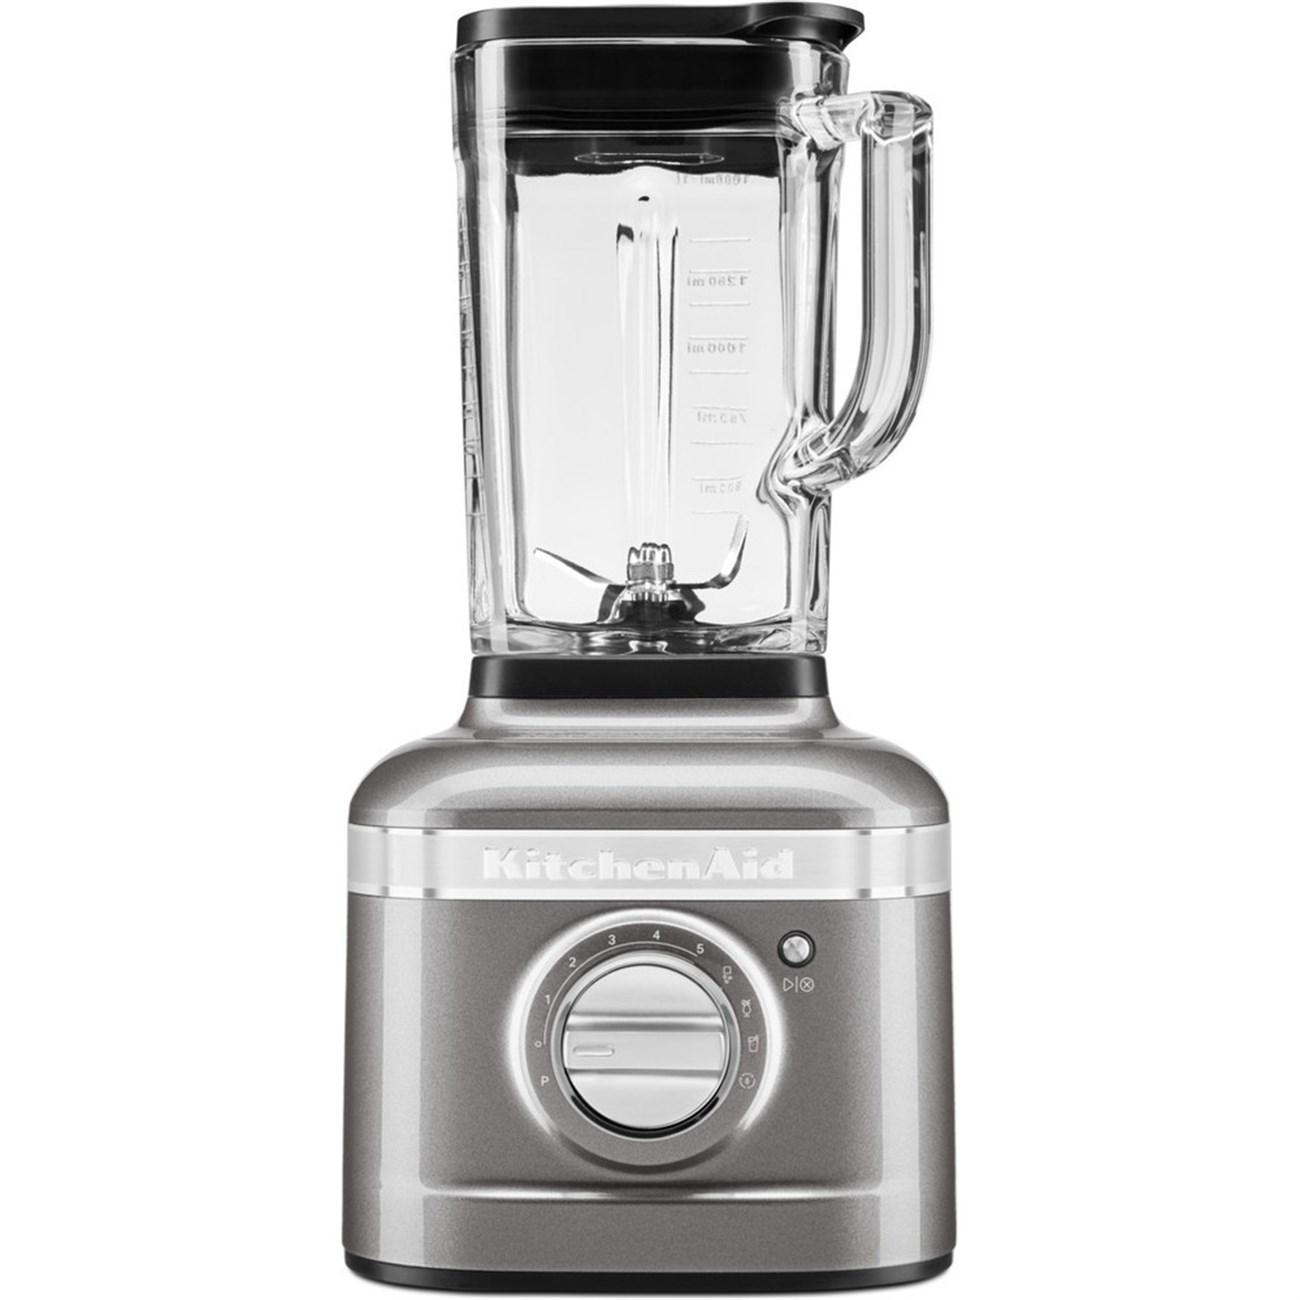 Kitchenaid K400 Artisan Blender - 5KSB4026 Medallion Silver